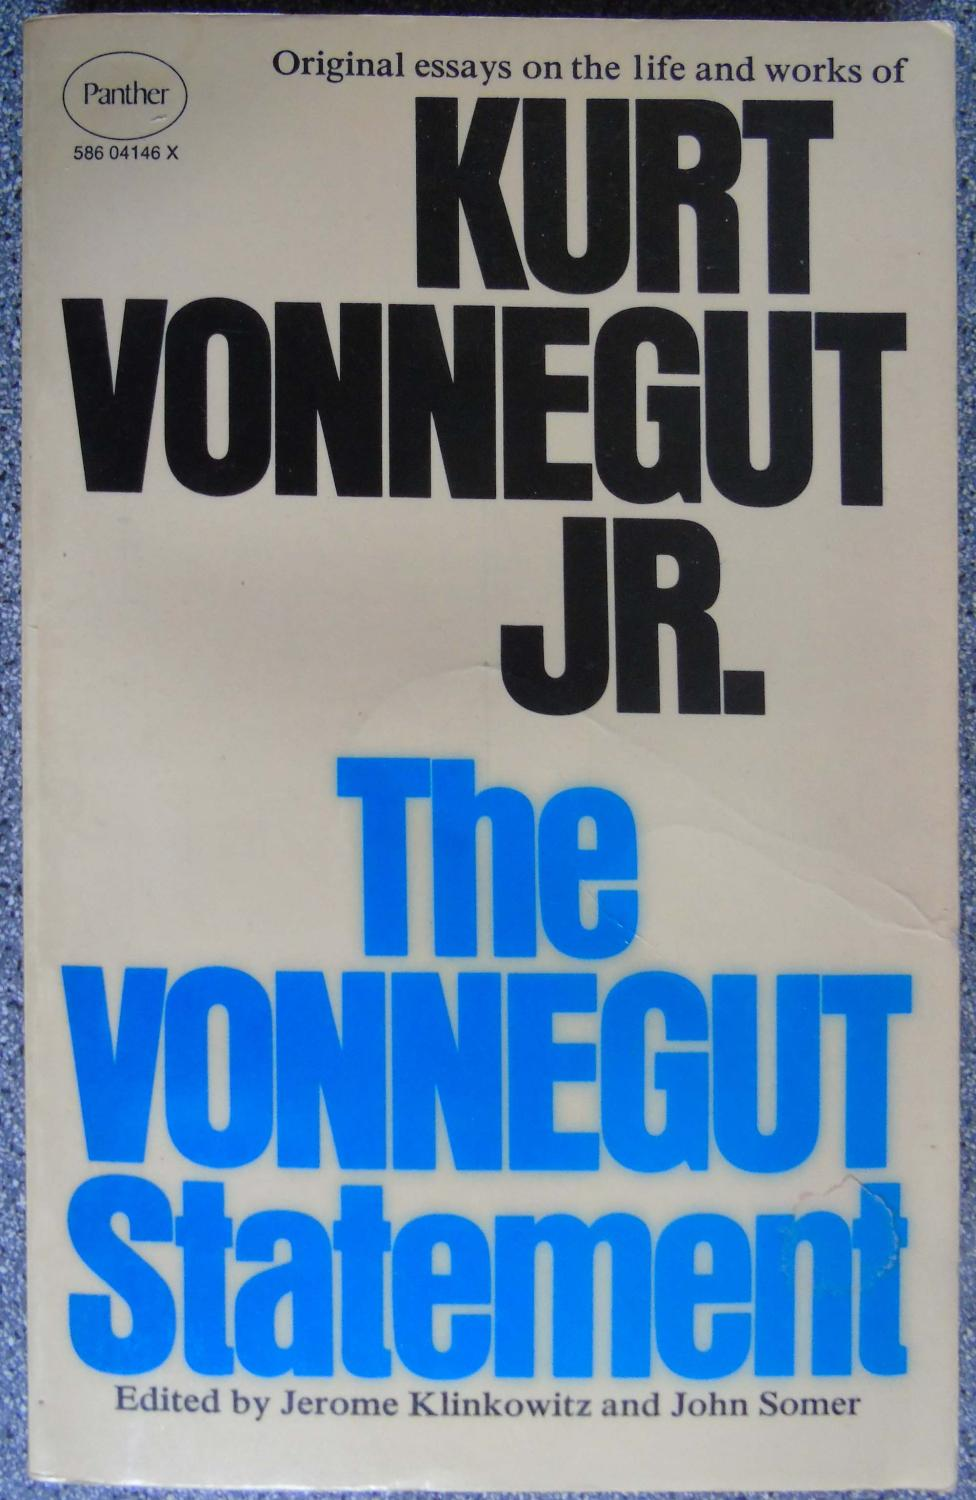 the vonnegut statement original essays on the life and work of  the vonnegut statement original essays on the life and work of kurt vonnegut jr by klinkowitz jerome somer john abebooks